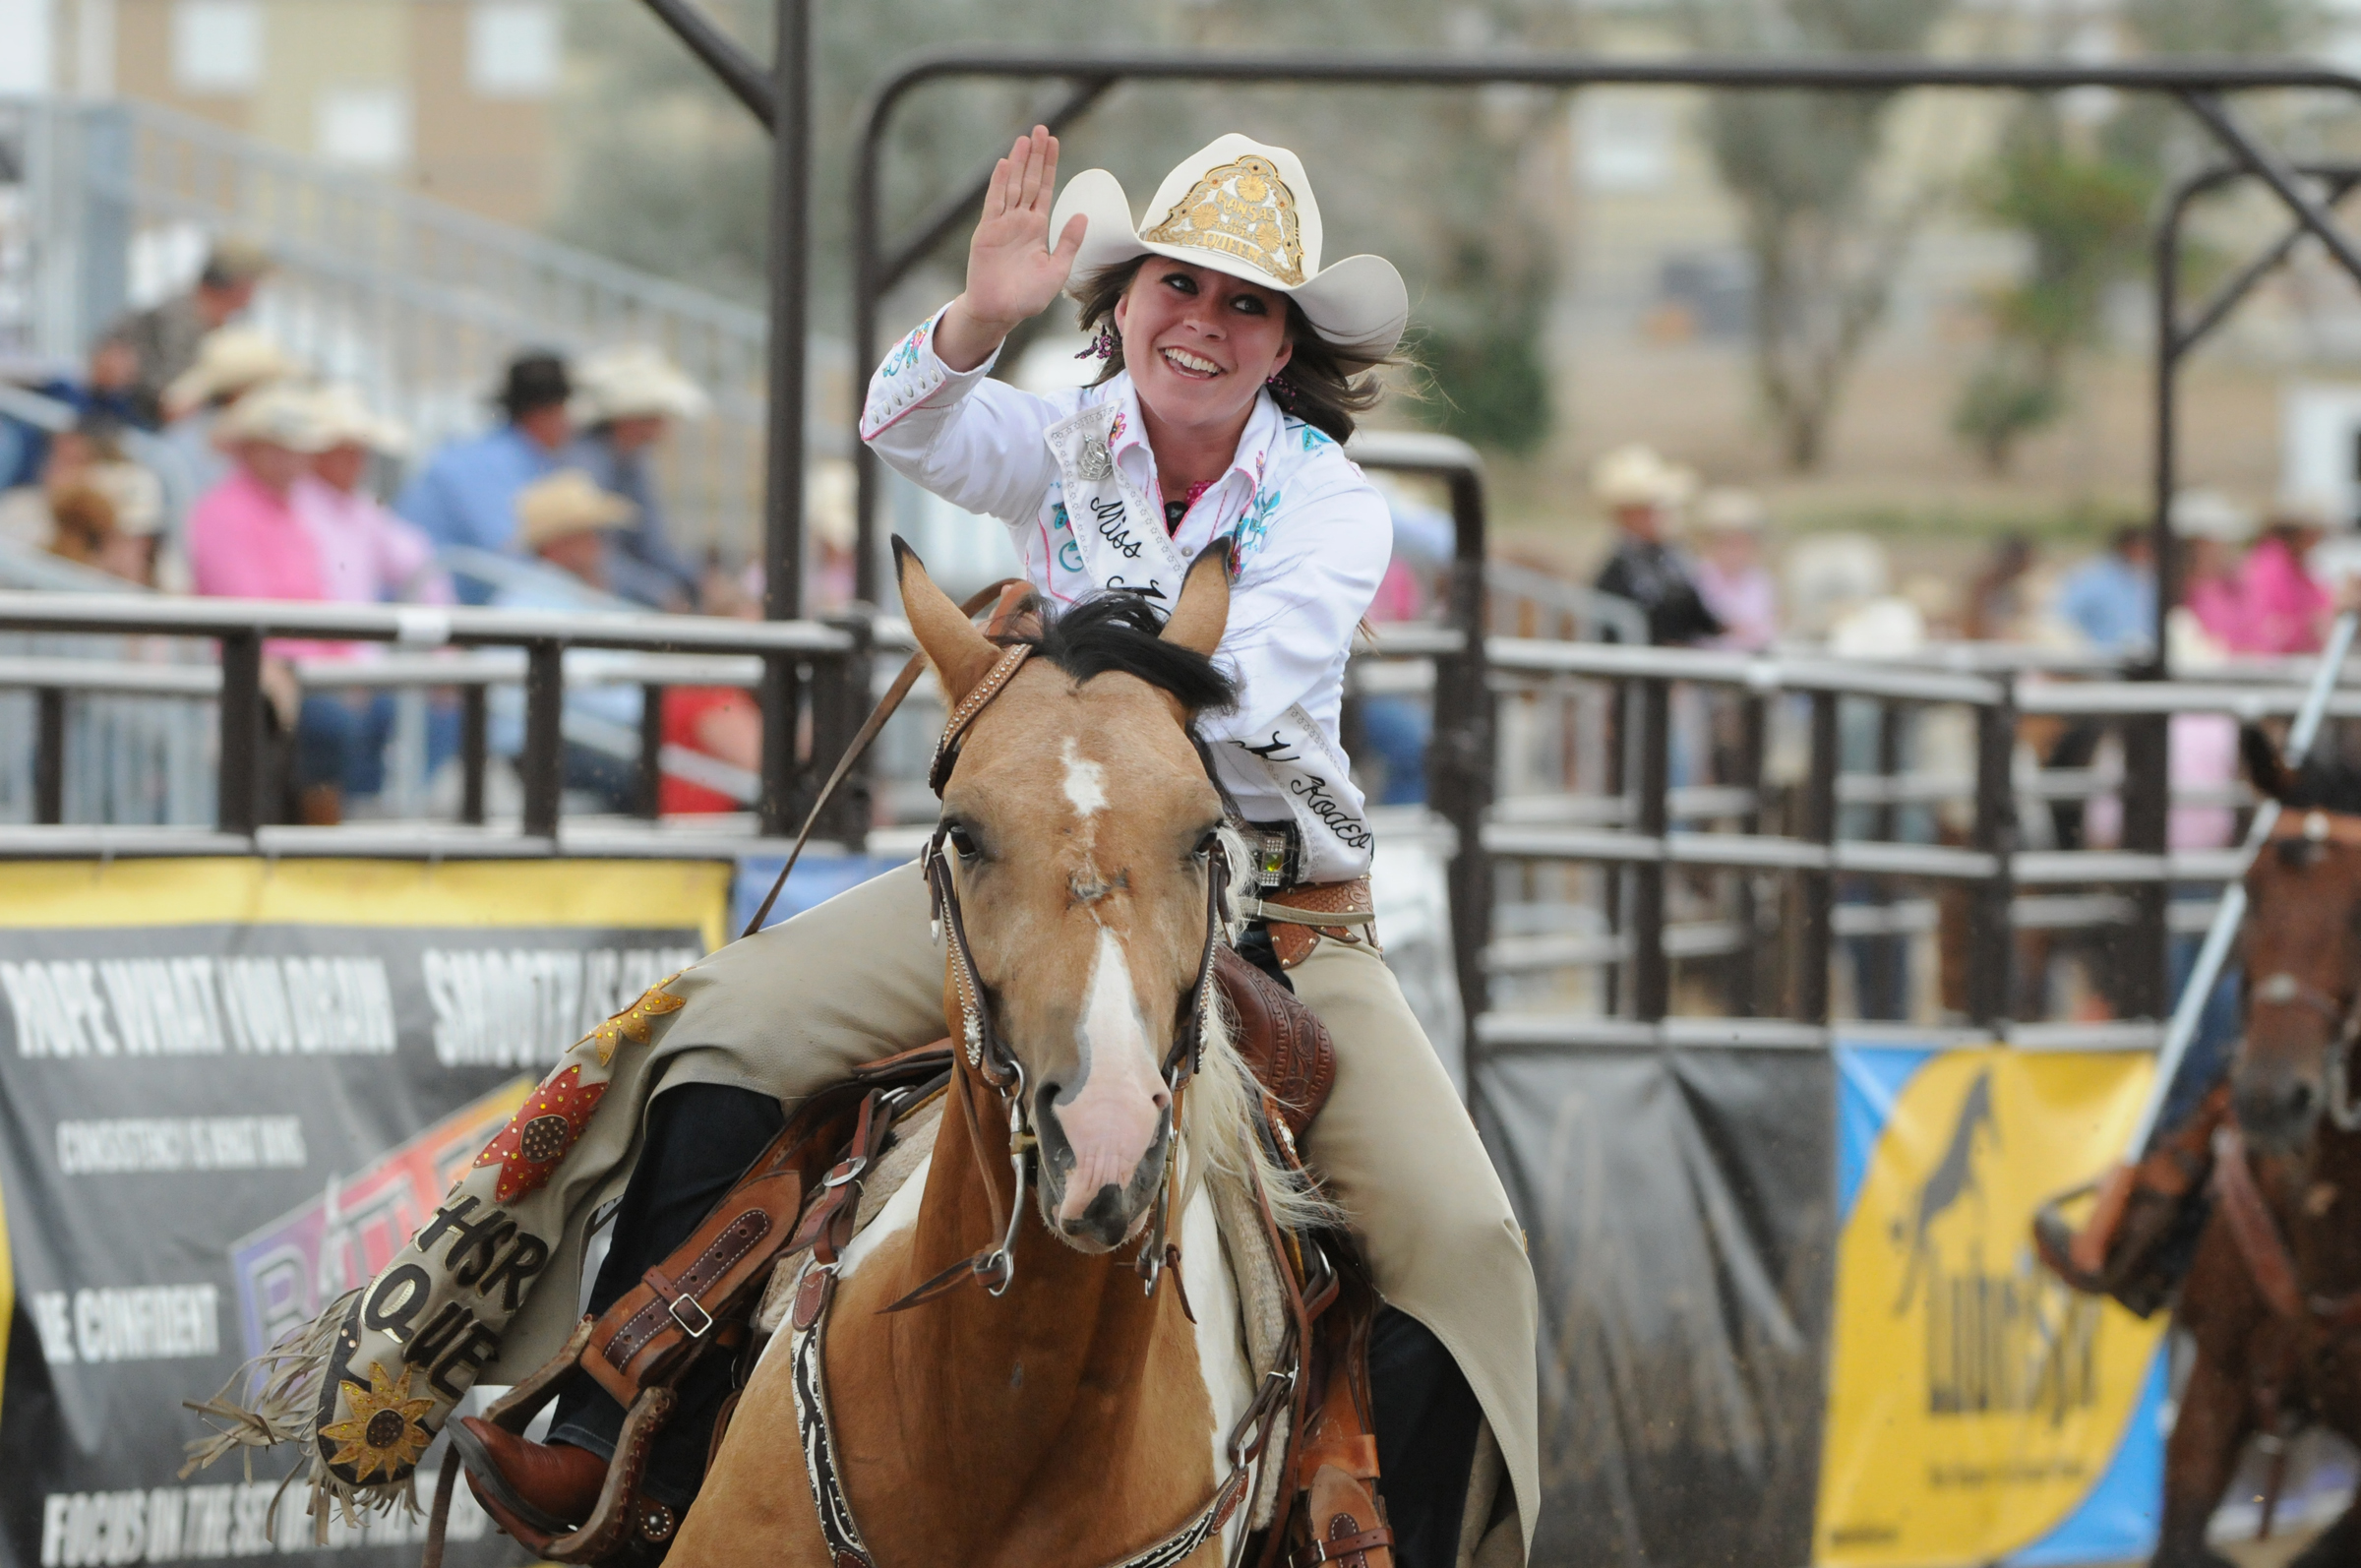 National High School Finals Rodeo Roto Mix Blog